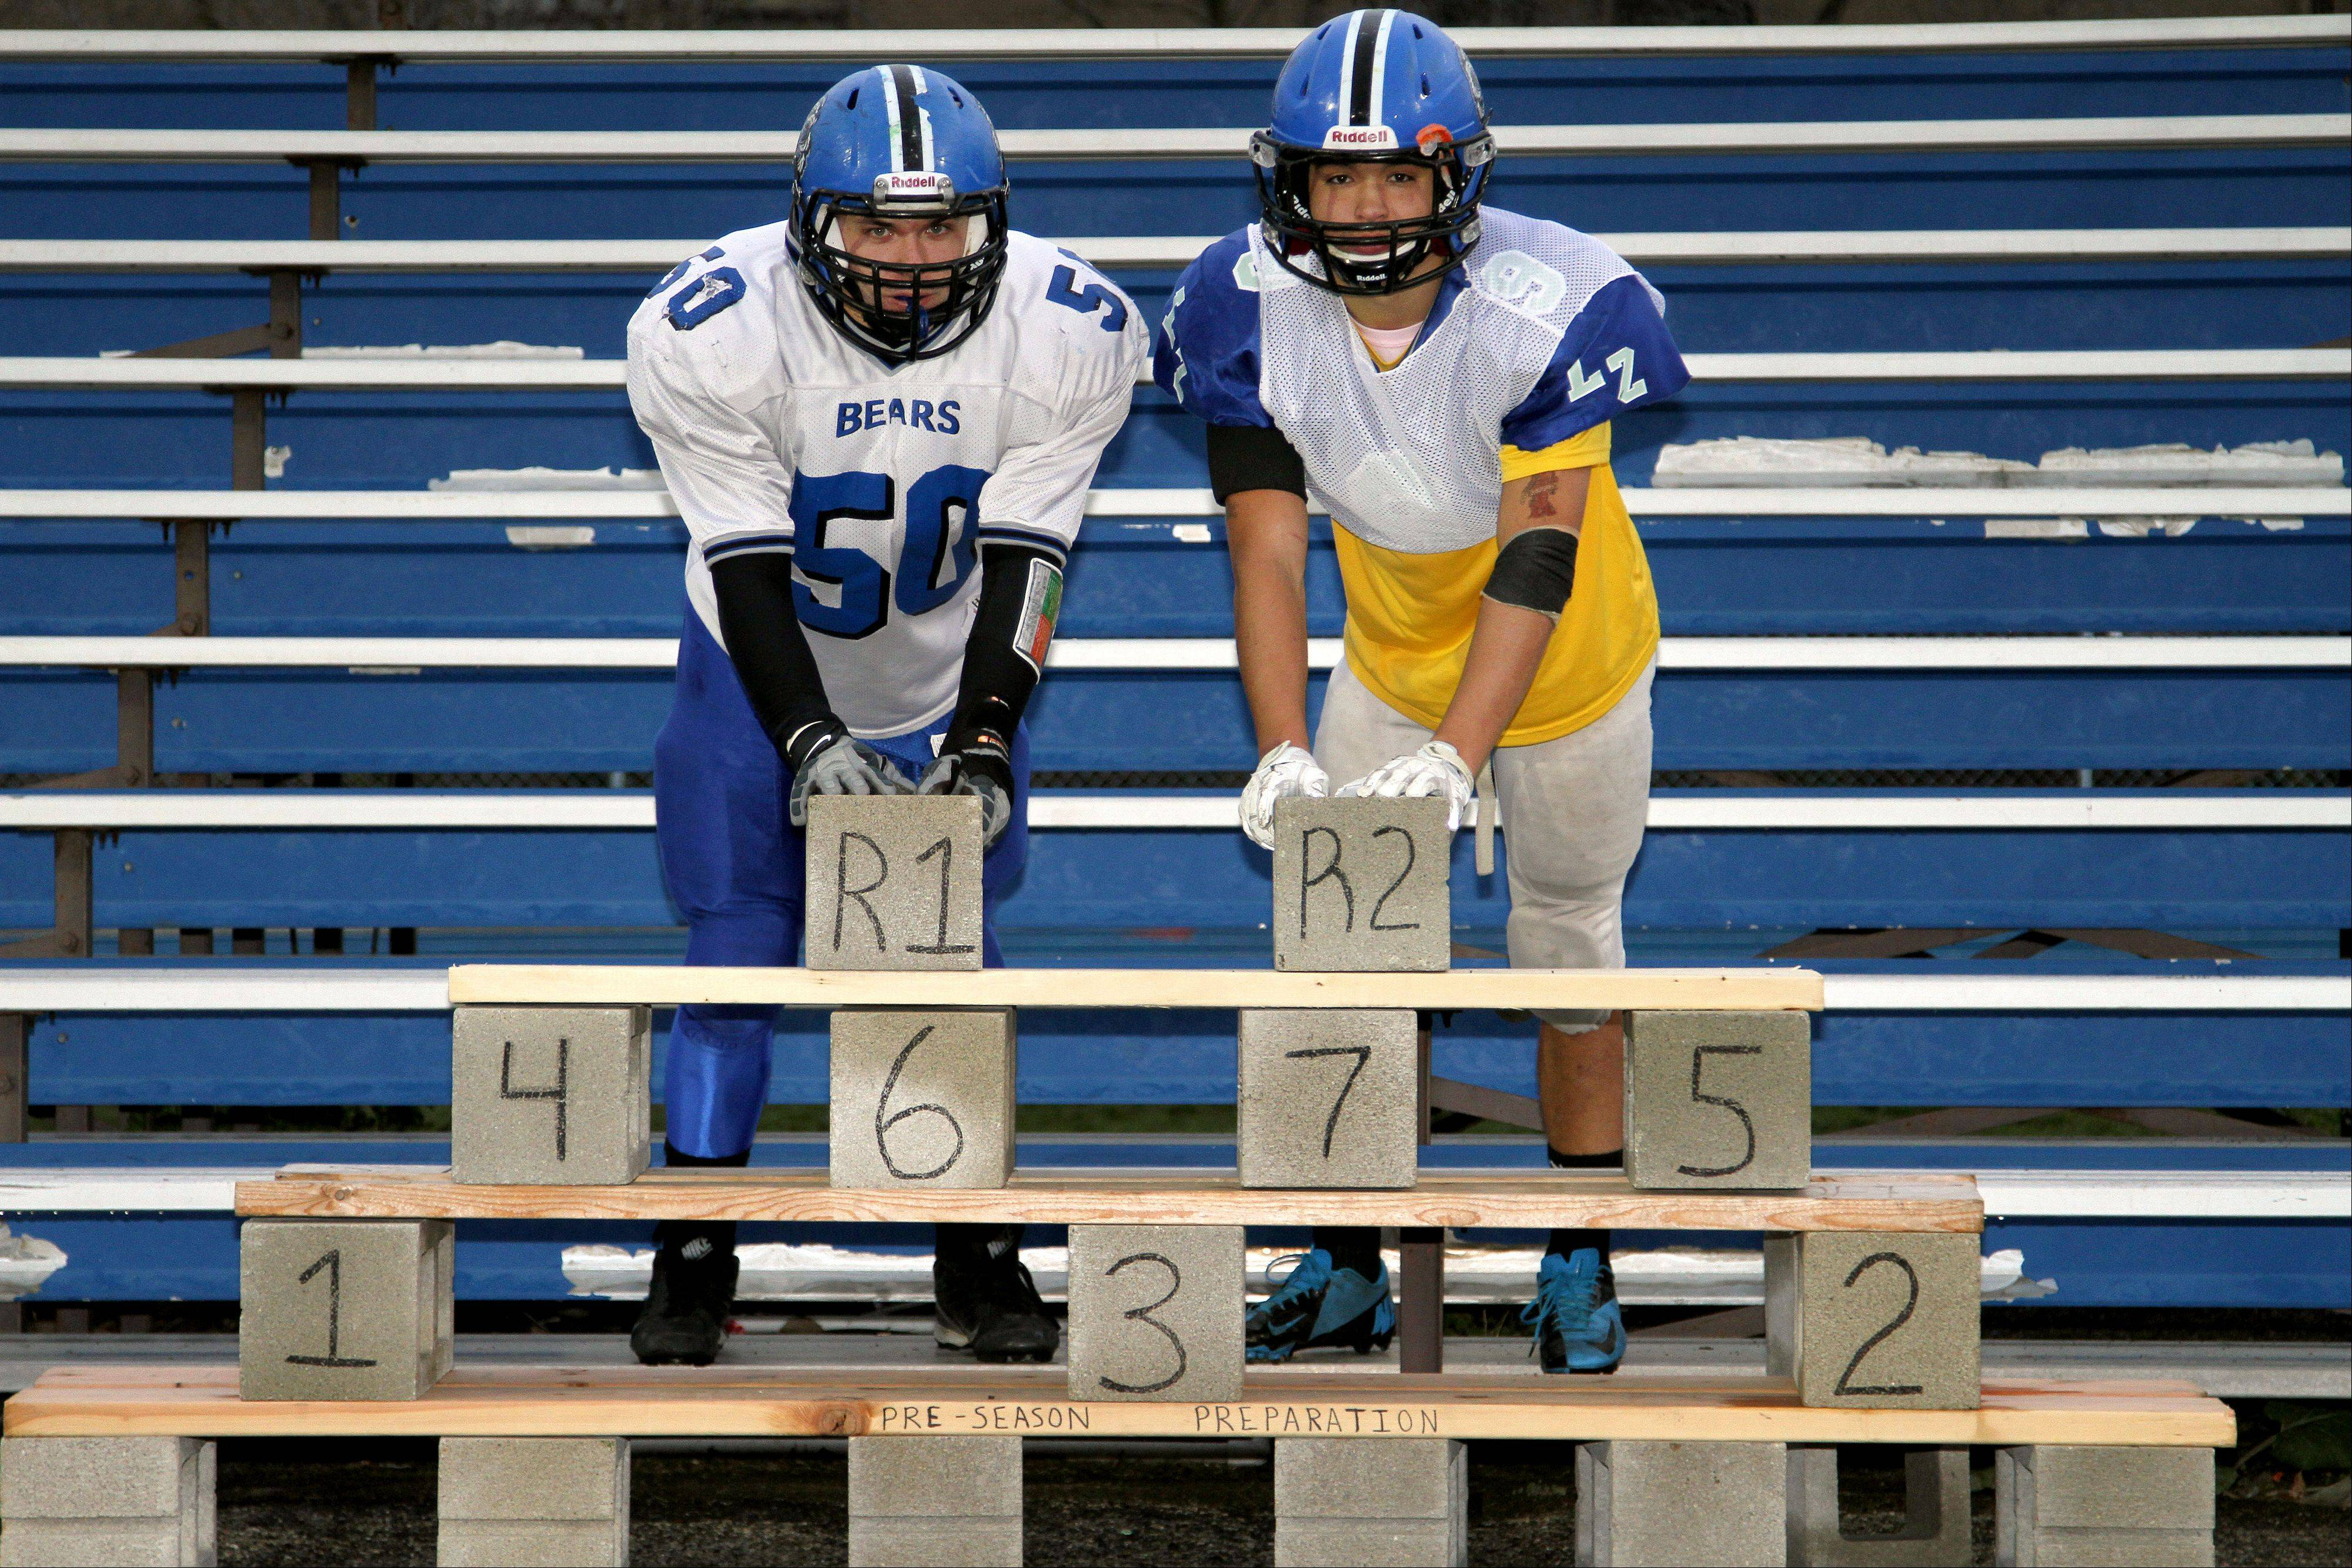 Lake Zurich football captains Jerry Bauer and Grant Soucy lean on a cinder block structure in the North end zone of the Bears' stadium. The cinder blocks symbolize the wins in the season, while each player gets his own individual brick in the structure.